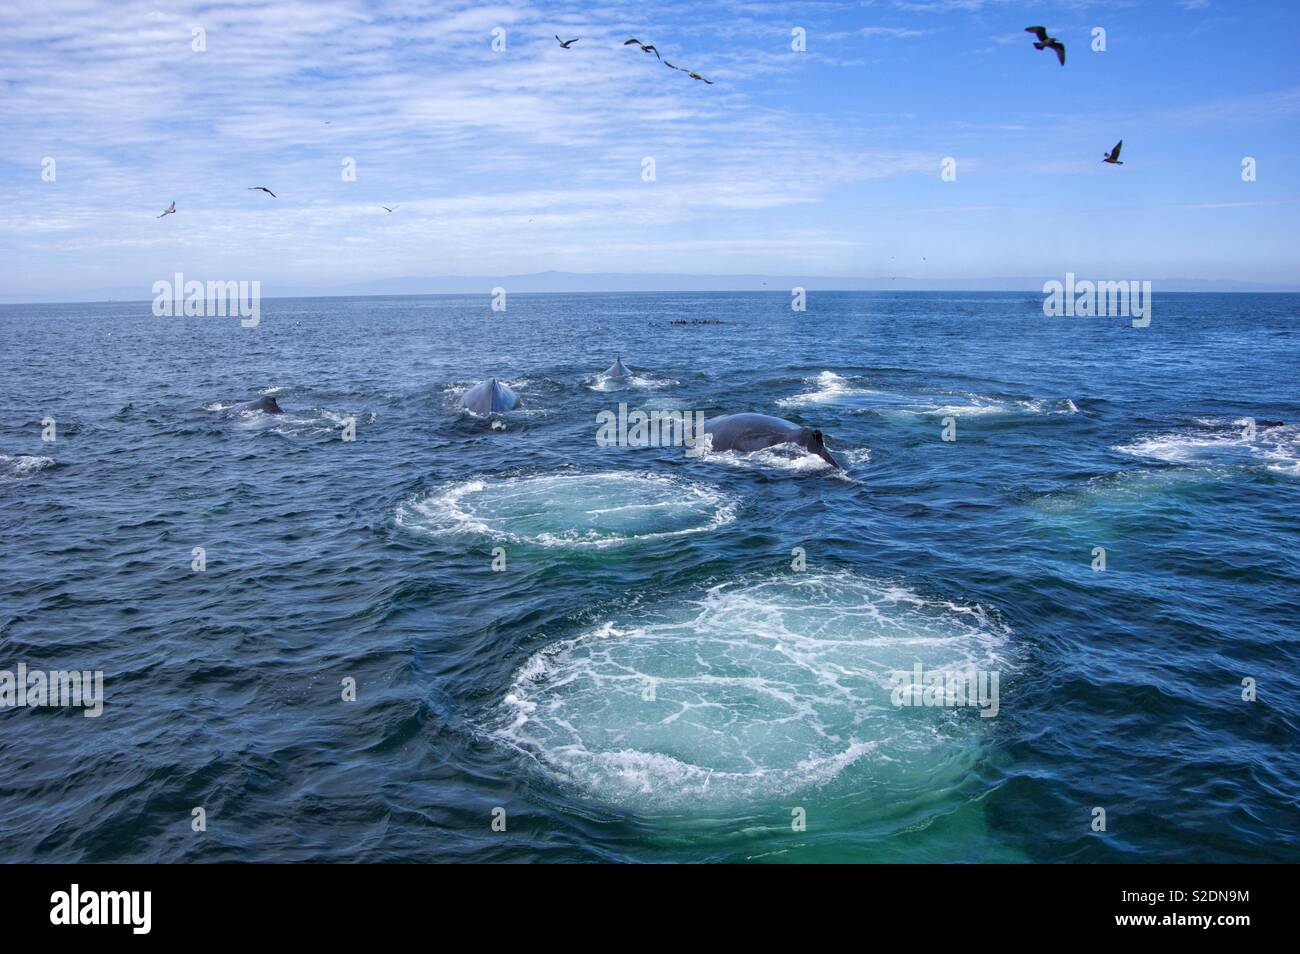 Humpback Whale Hunting - Stock Image